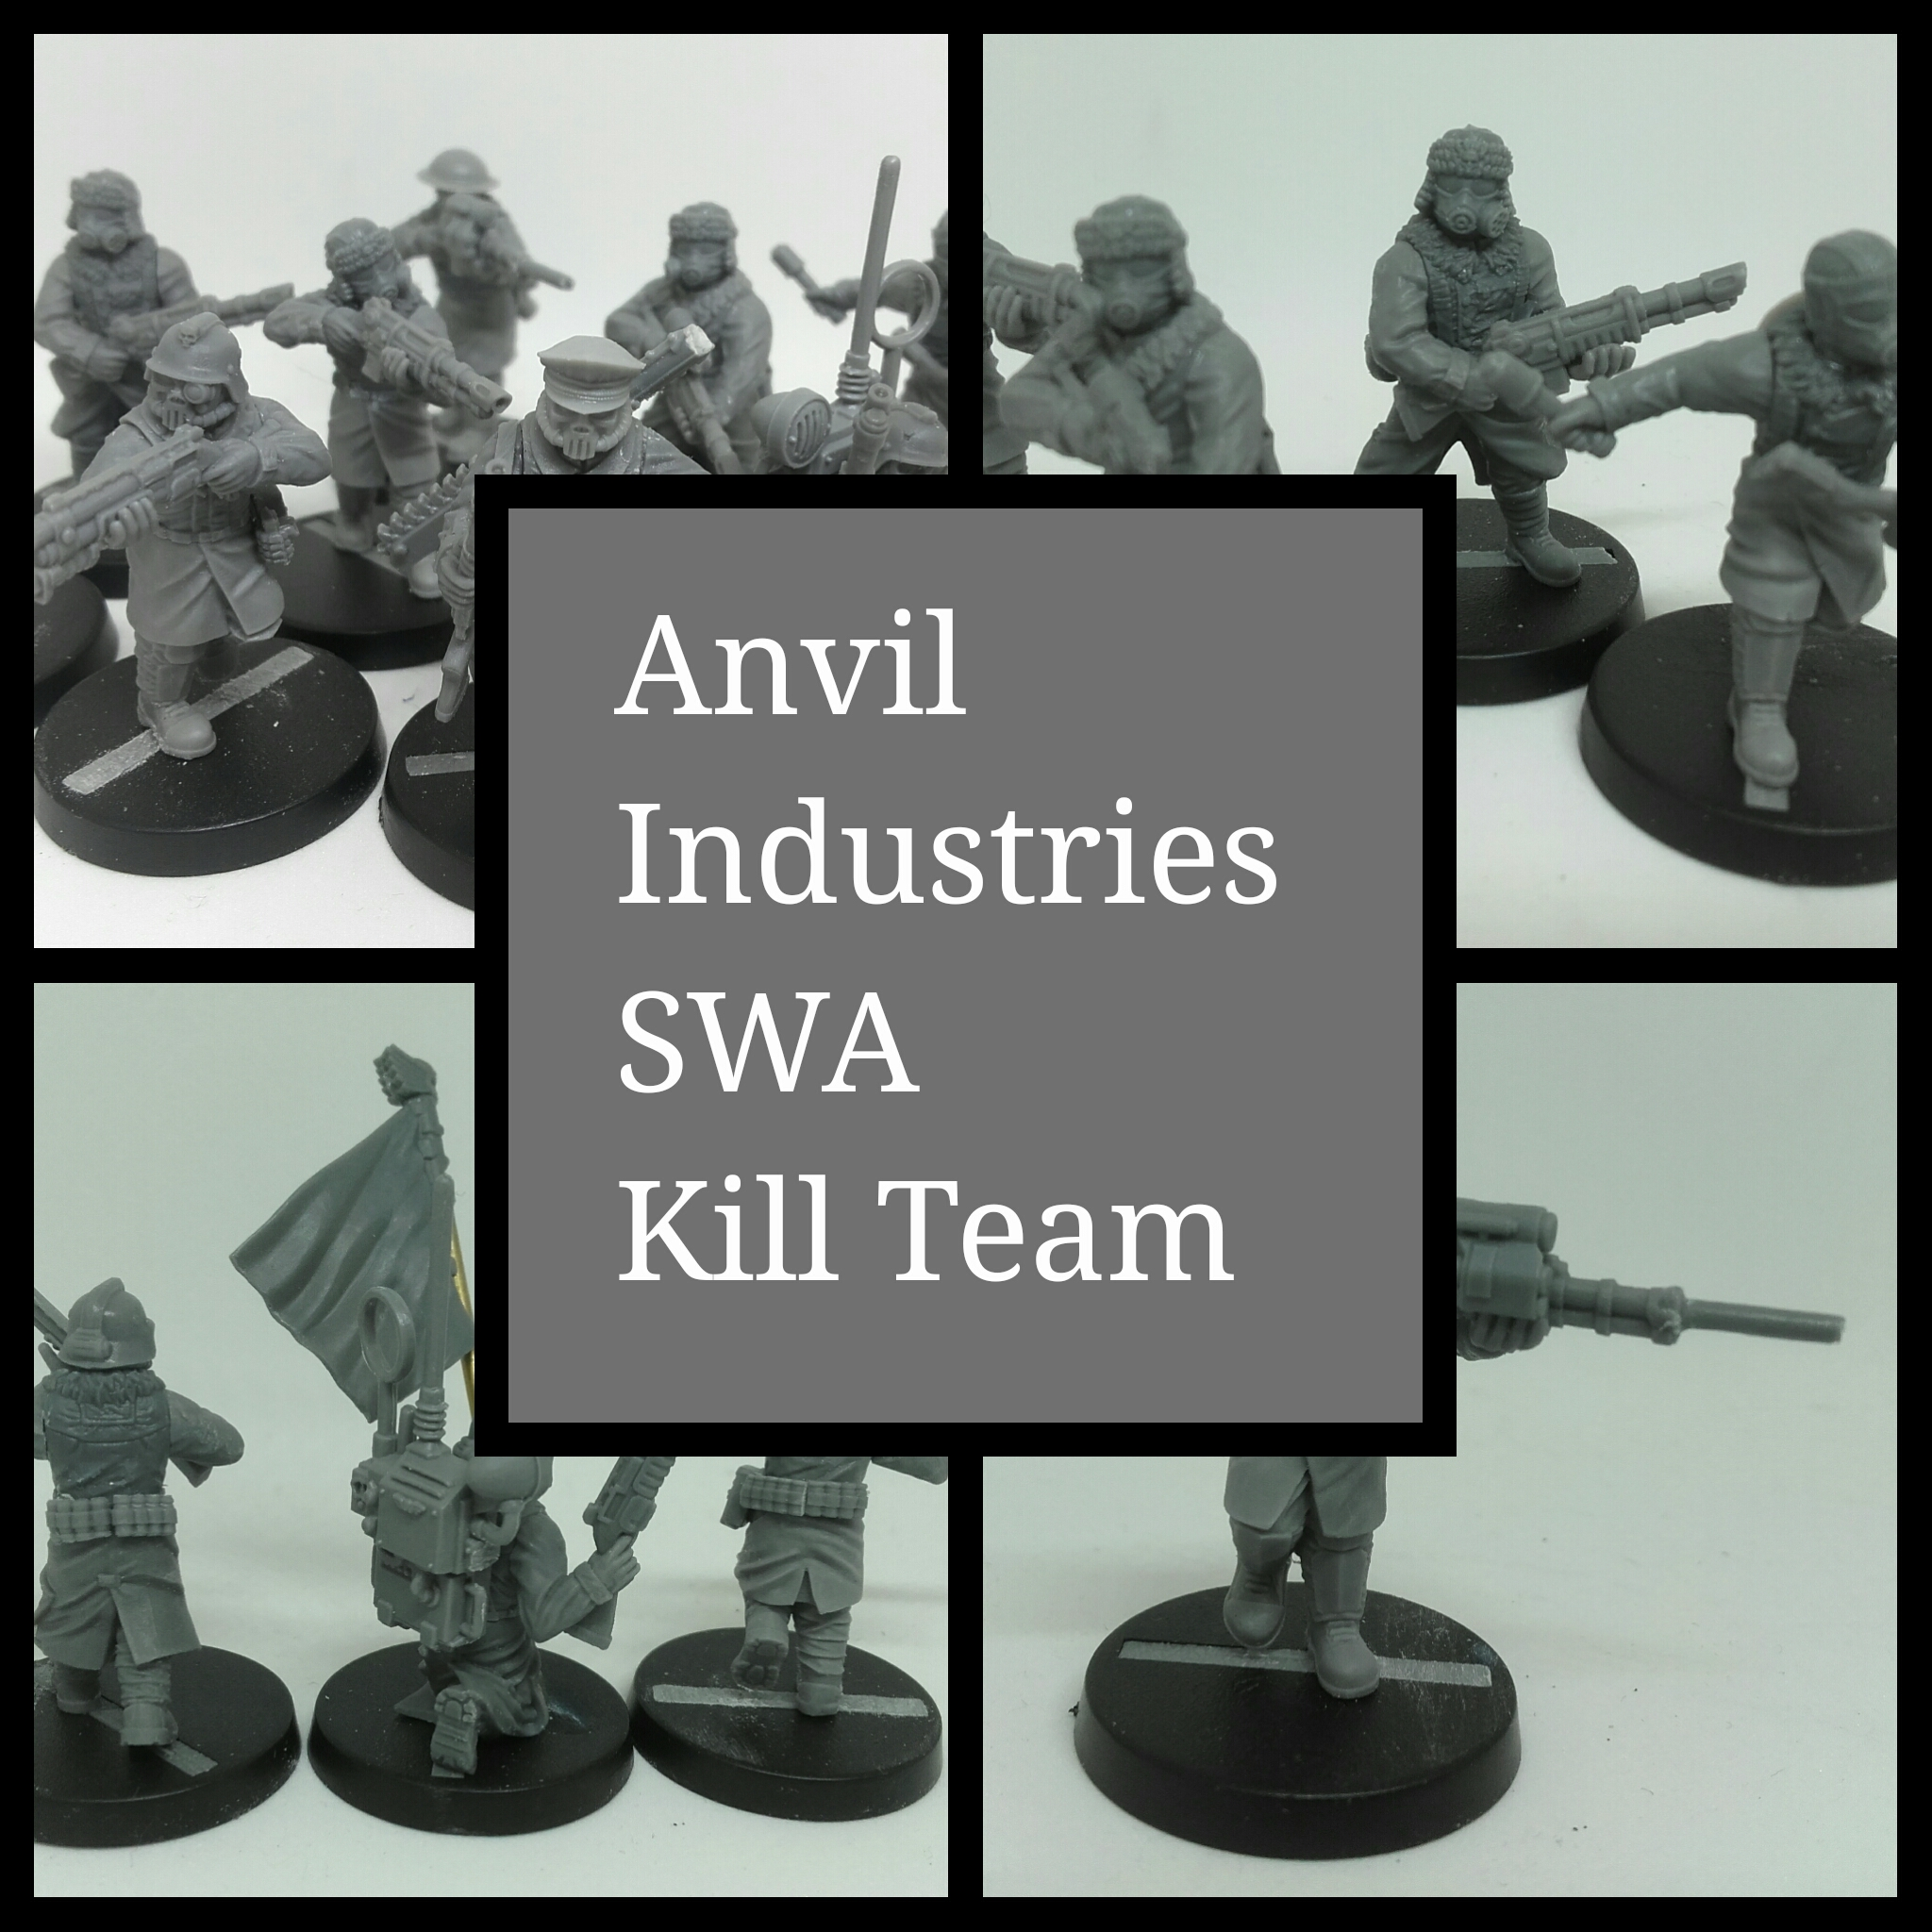 anvil industries trench fighters kill team 1 stepping between games